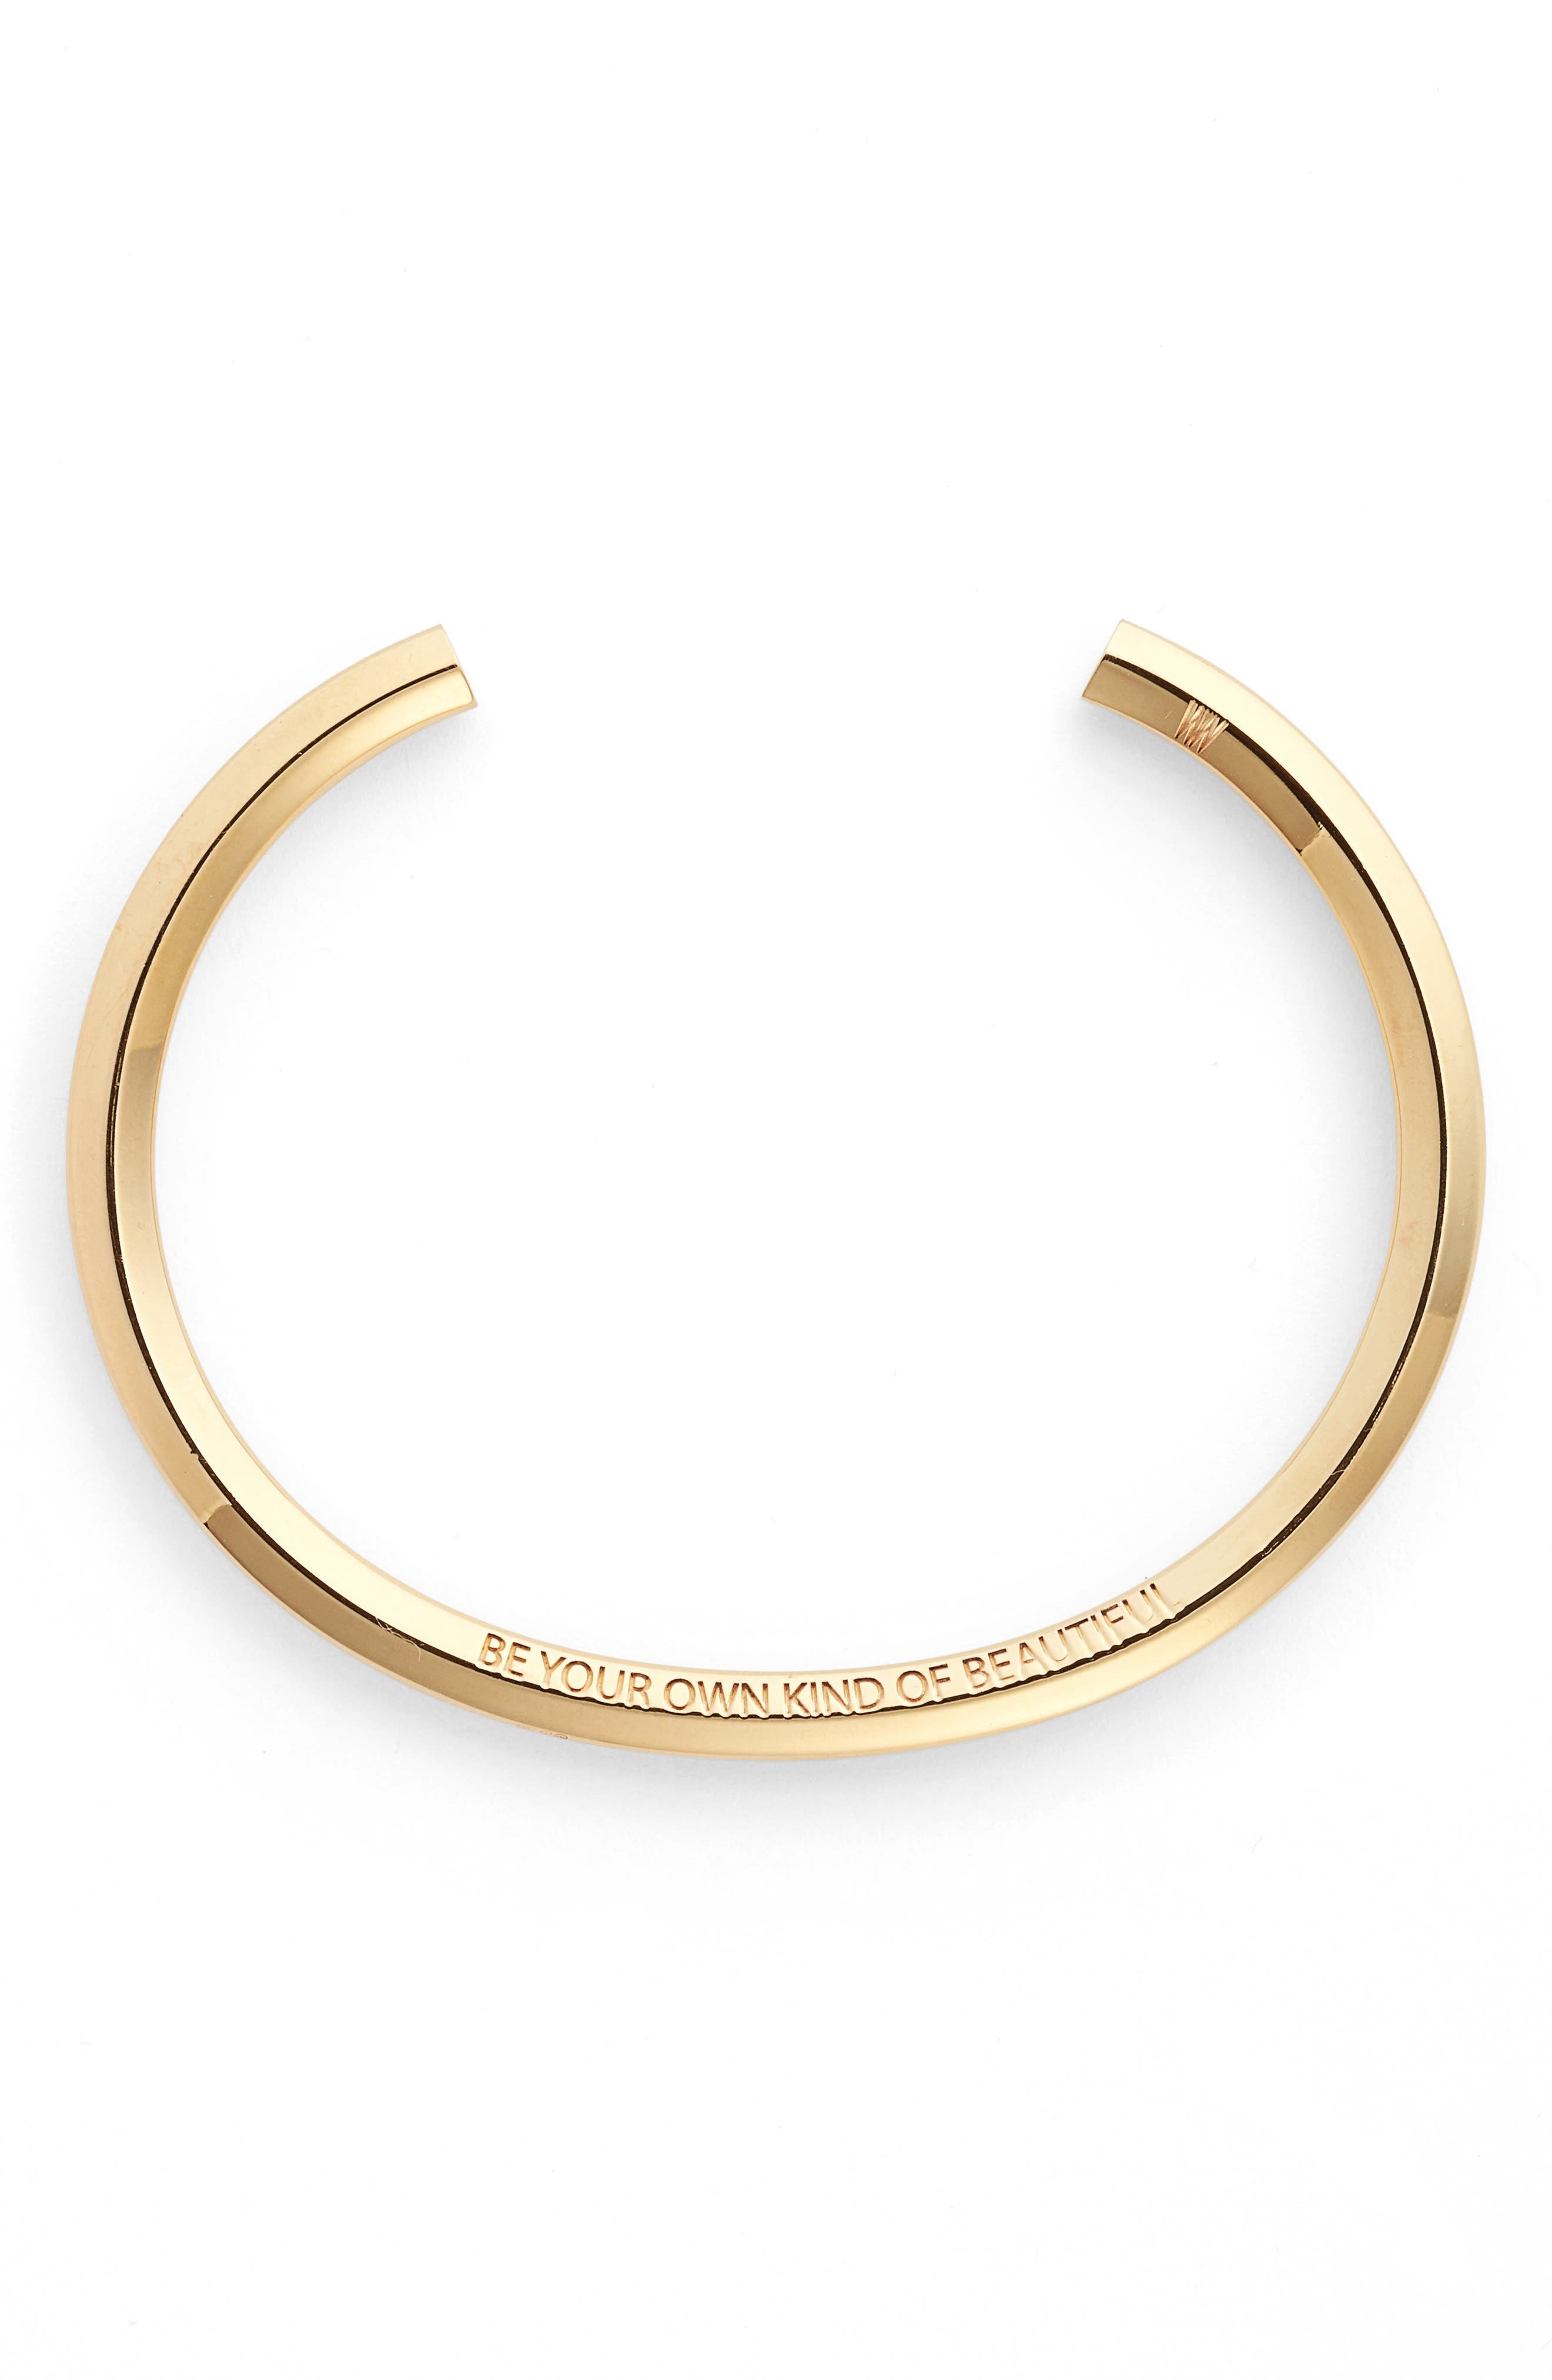 STELLA VALLE Be Your Own Kind of Beautiful Wrist Cuff